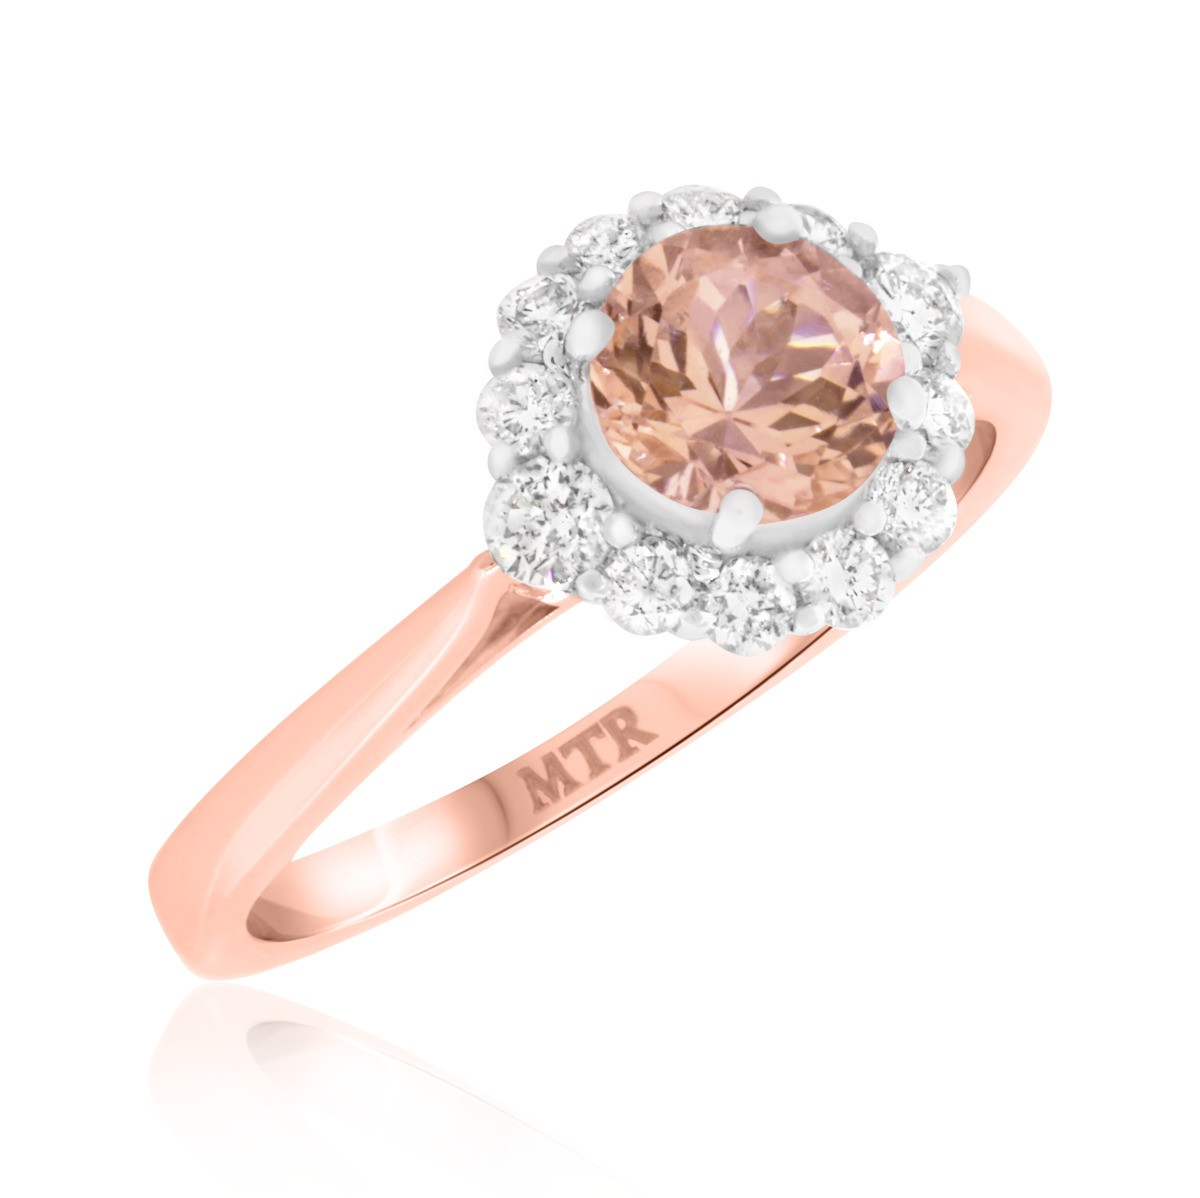 1 Carat T.W. Morganite and Diamond Engagement Ring 14K Rose Gold